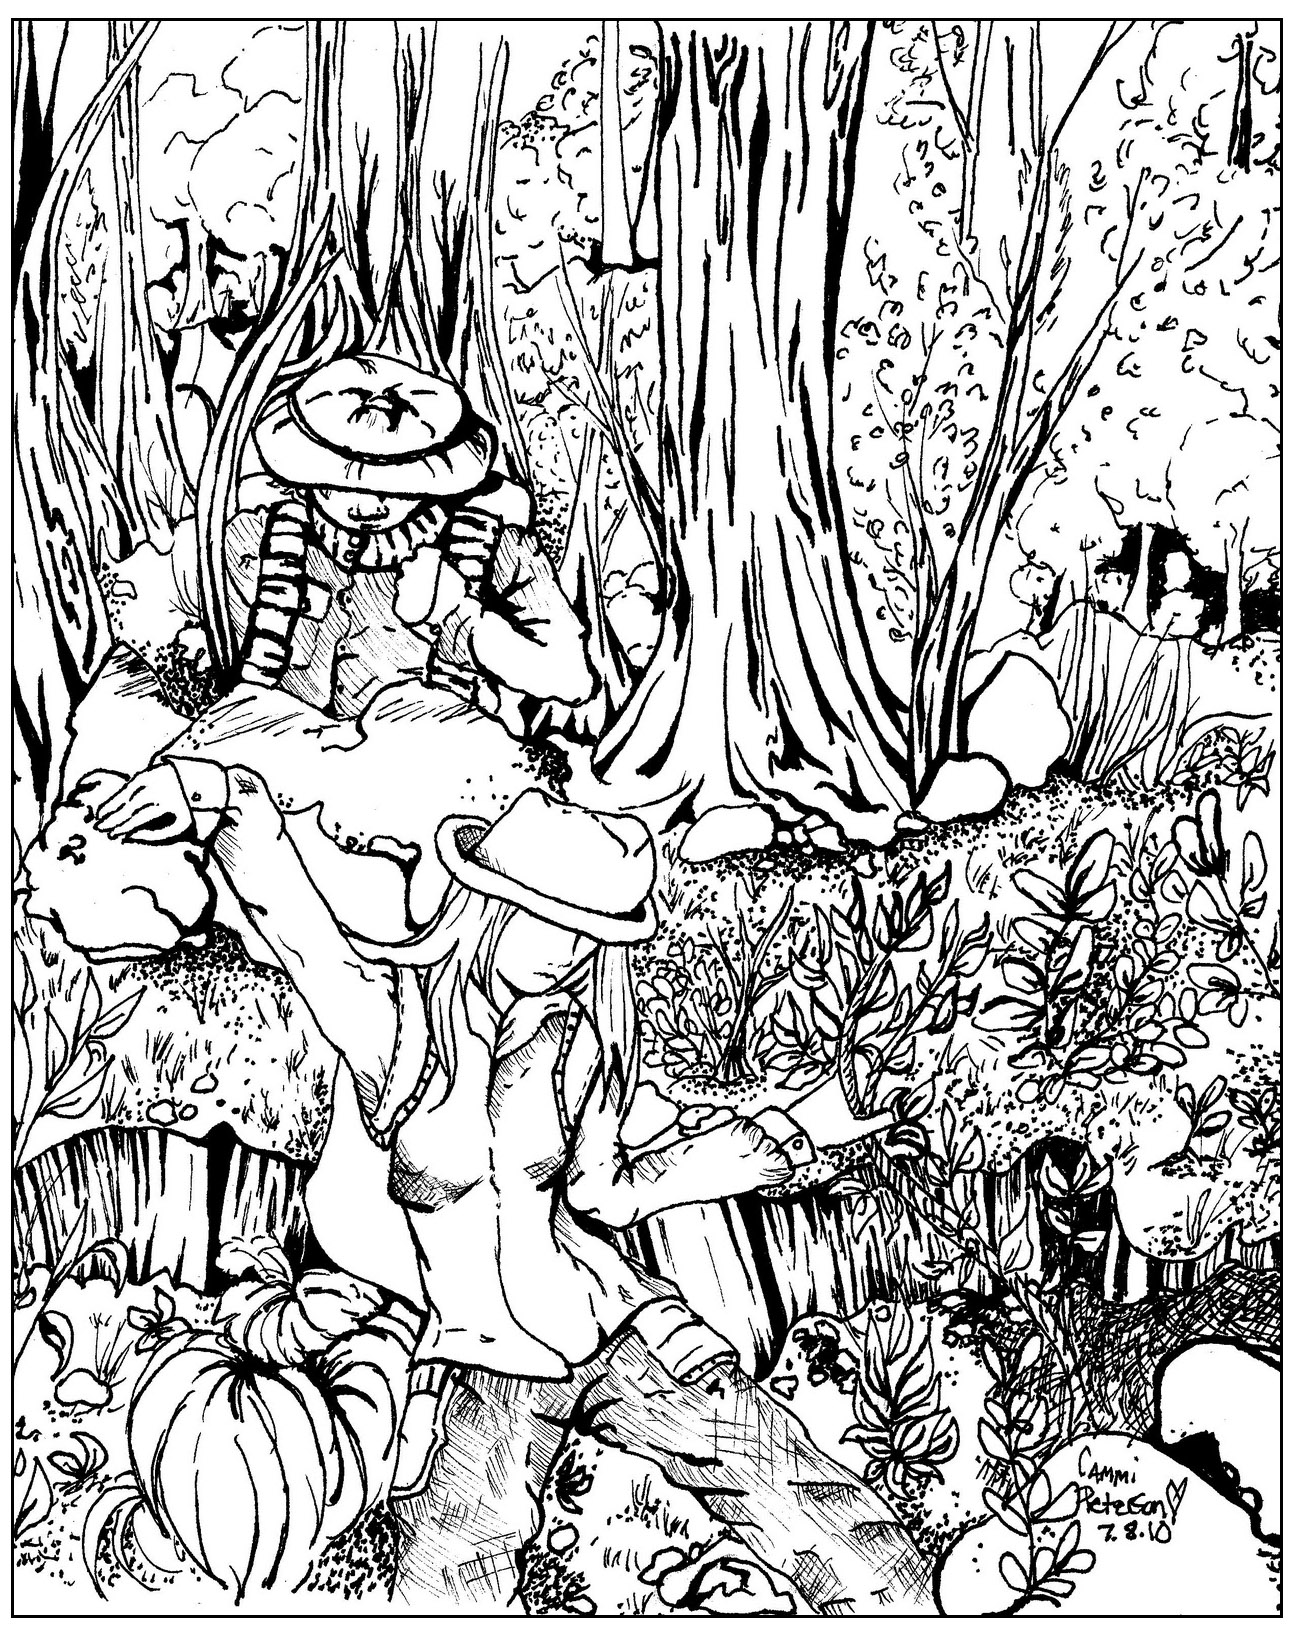 Lost in forest jungle forest adult coloring pages for Jungle book coloring pages for kids